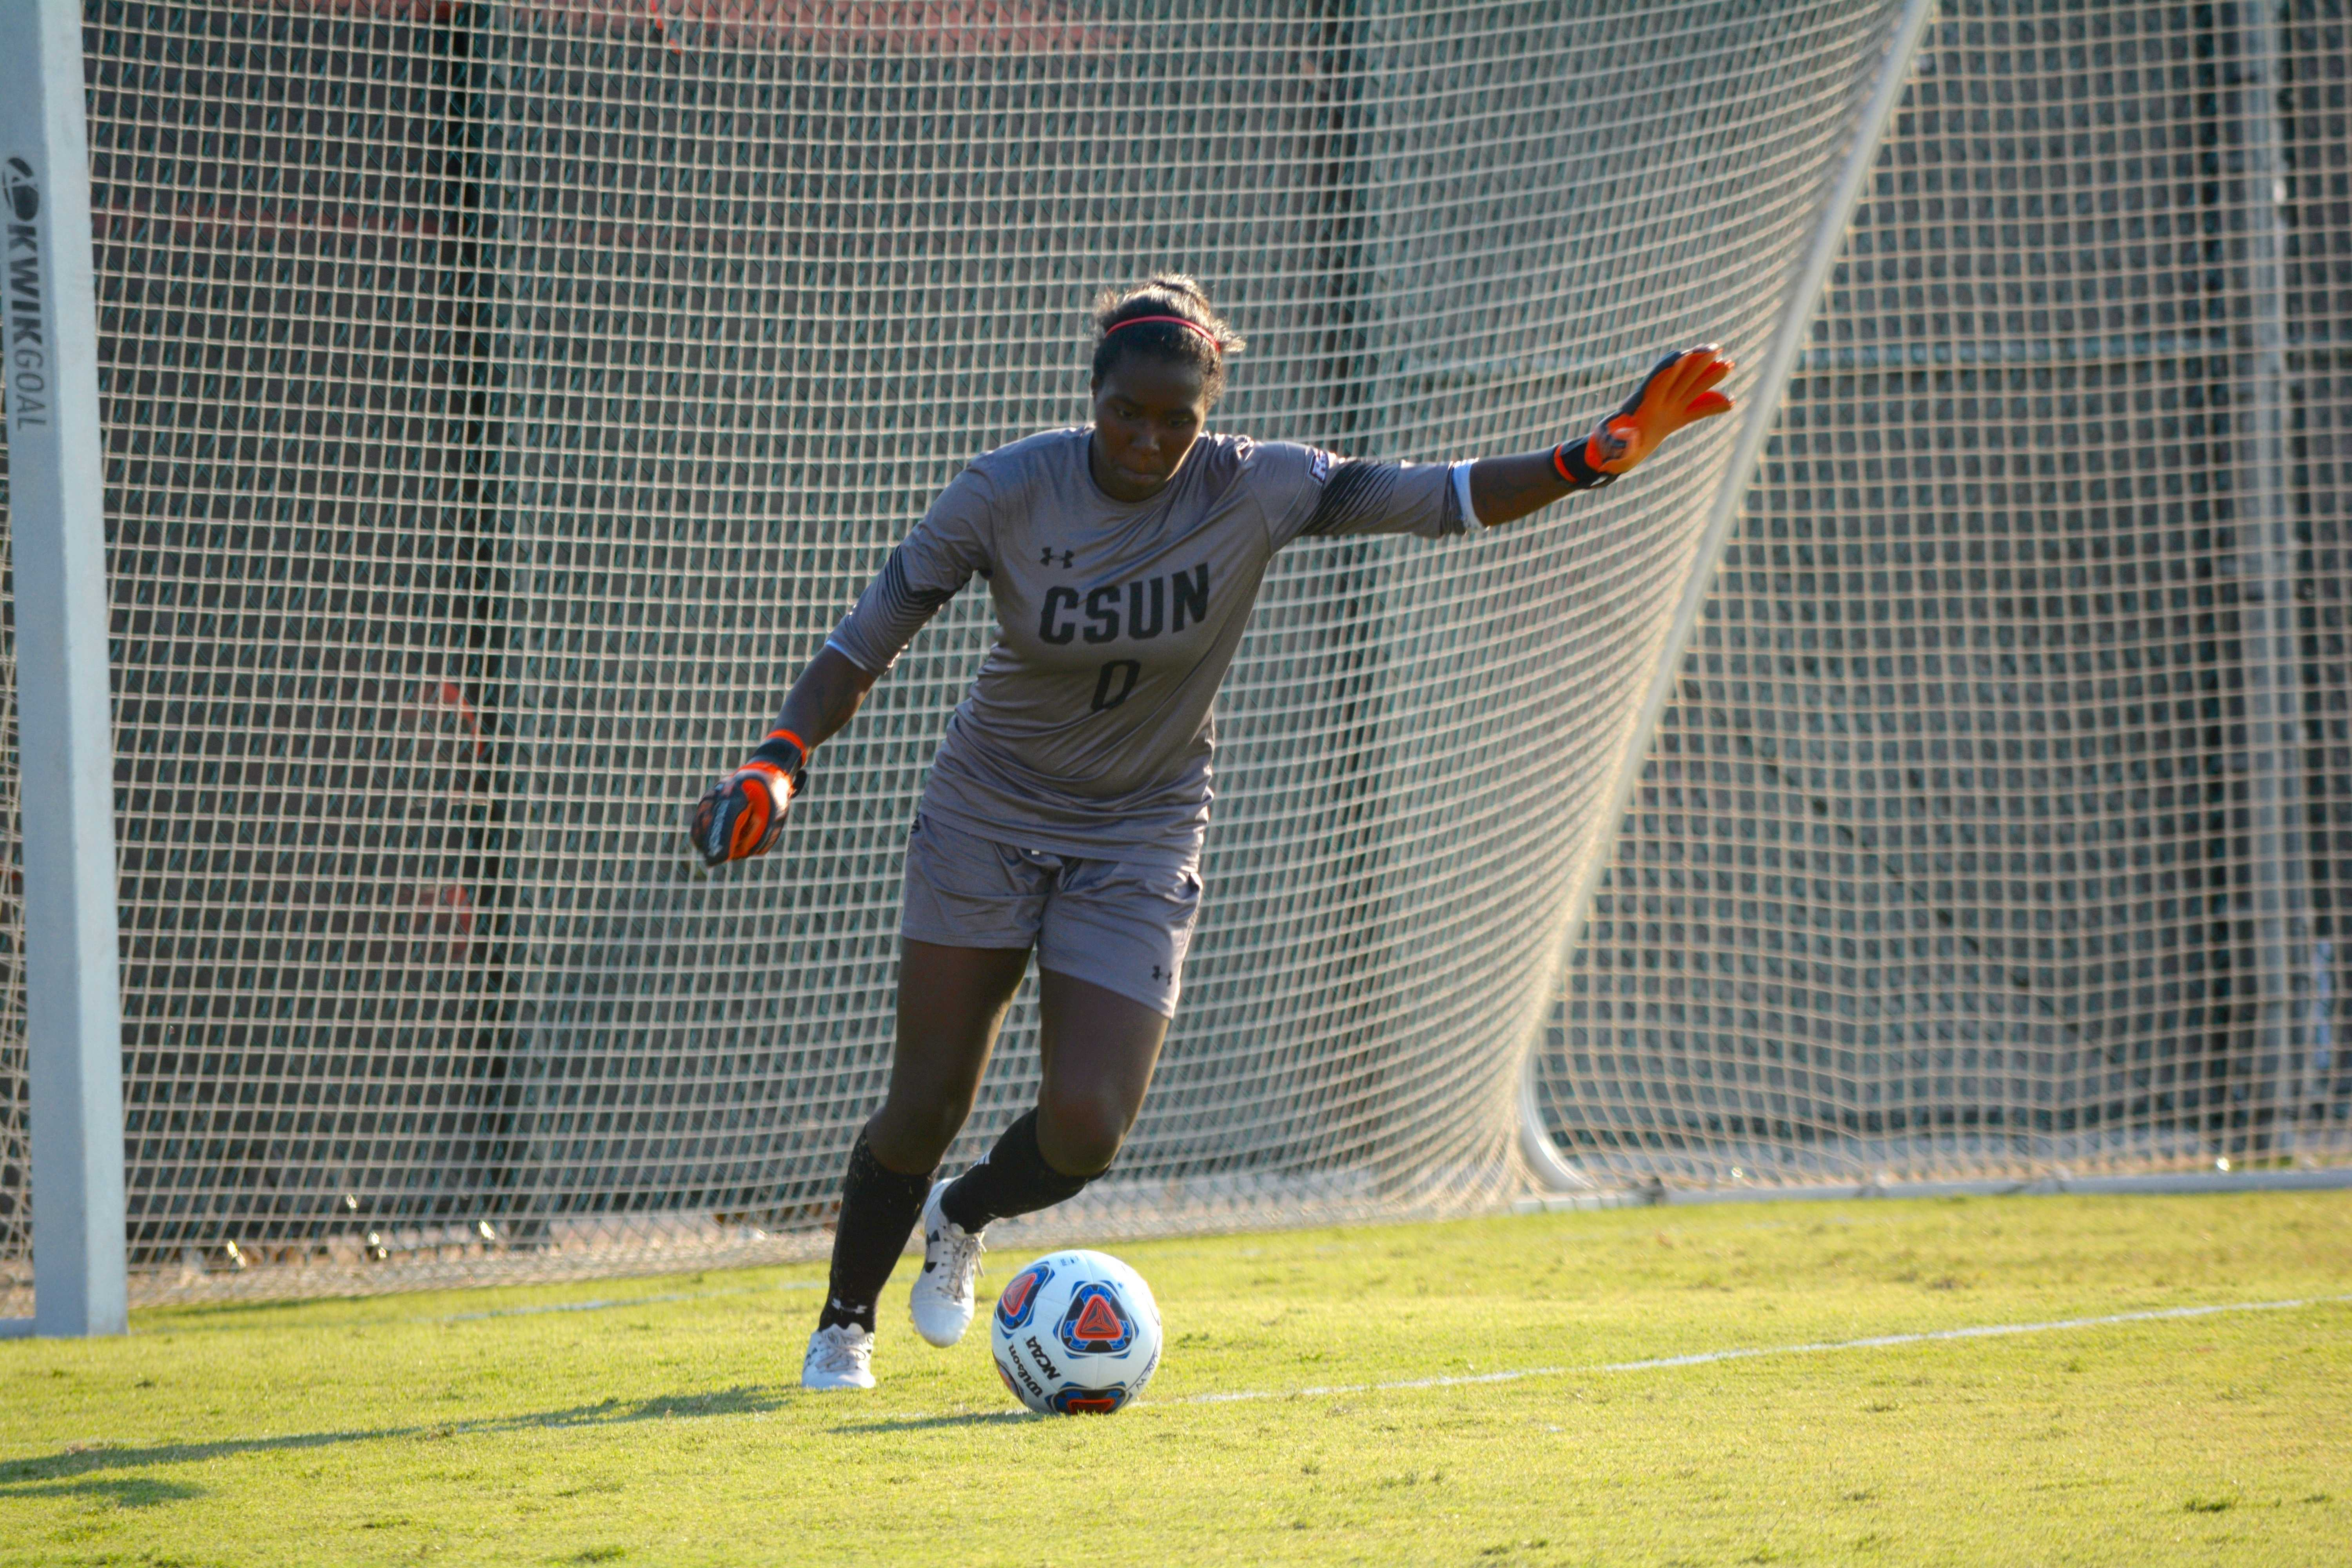 CSUN goalie prepares to pass ball